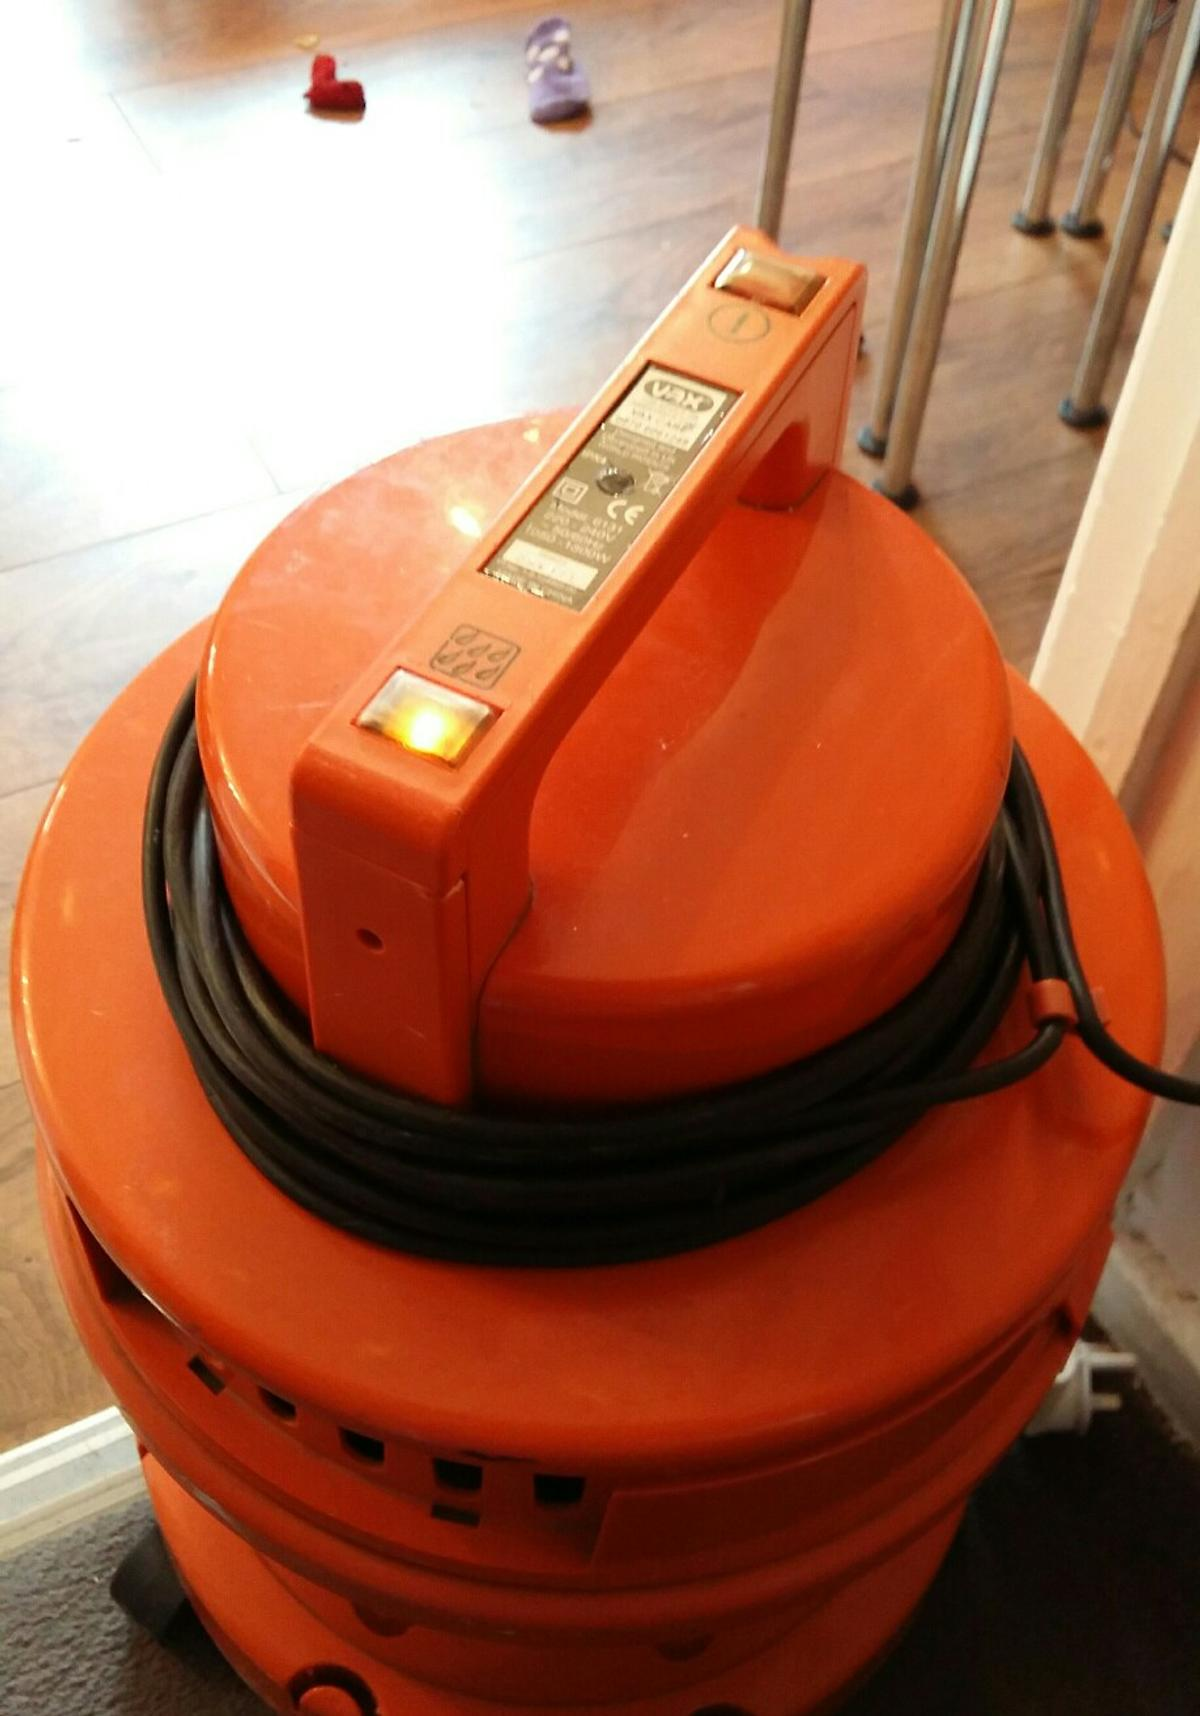 VaX 6131 3 in 1 in M11 Manchester for £40 00 for sale - Shpock